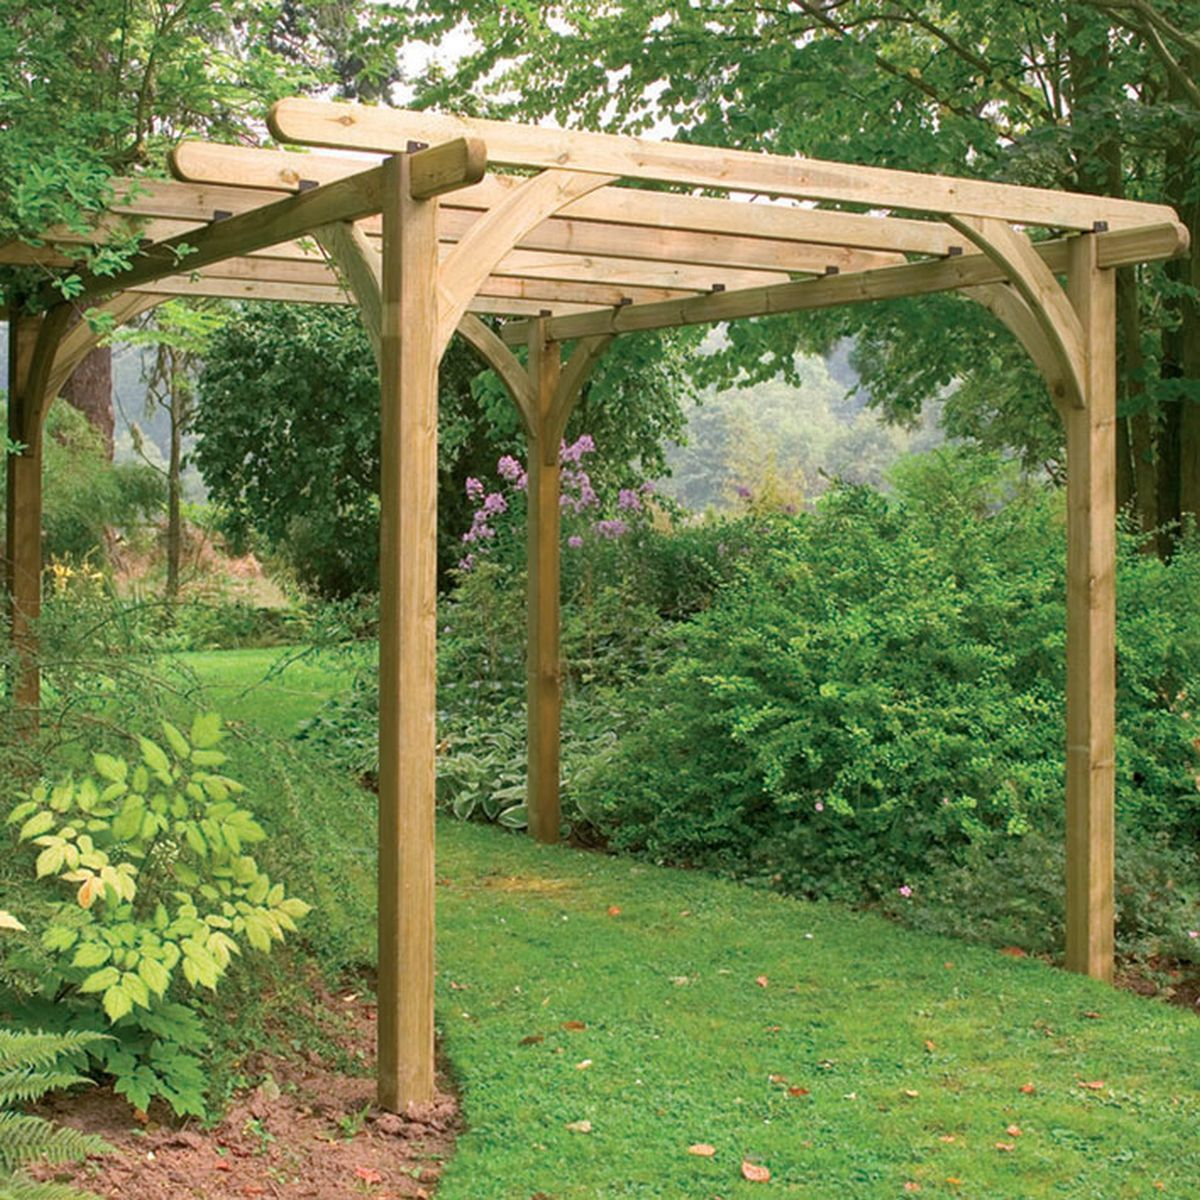 Forest Ultima Wooden Pergola Kit x - Forest Garden Ultima Pergola Kit 3.6 X 3.6m. Simple. Garden Living